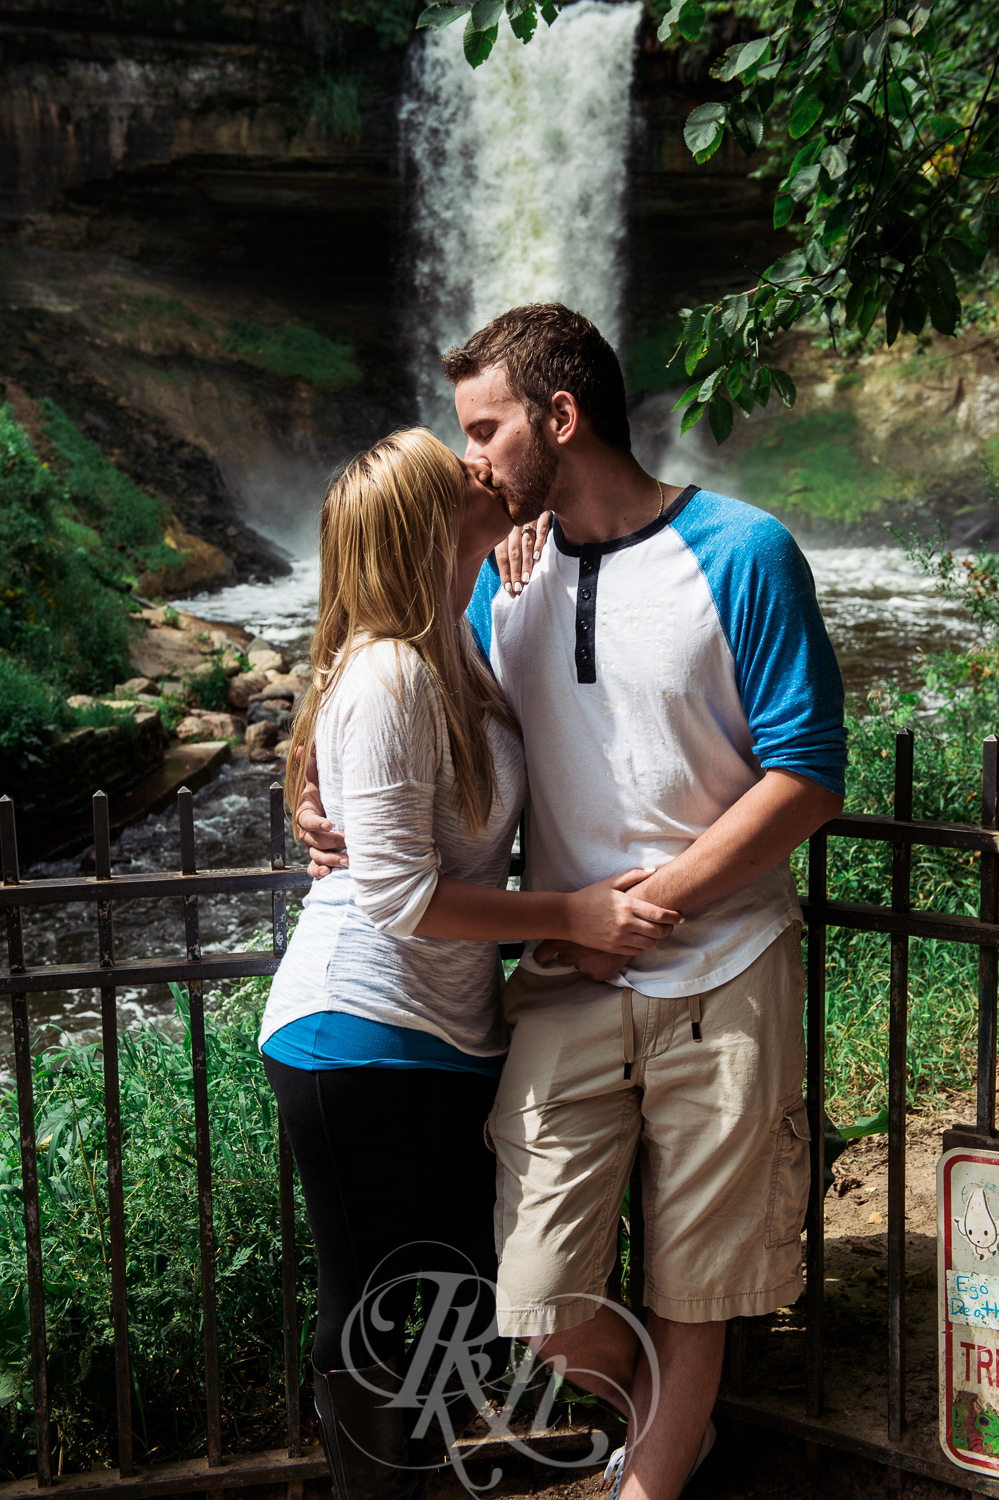 Katie & Jeff - Minnesota Engagement Photography - RKH Images -5.jpg